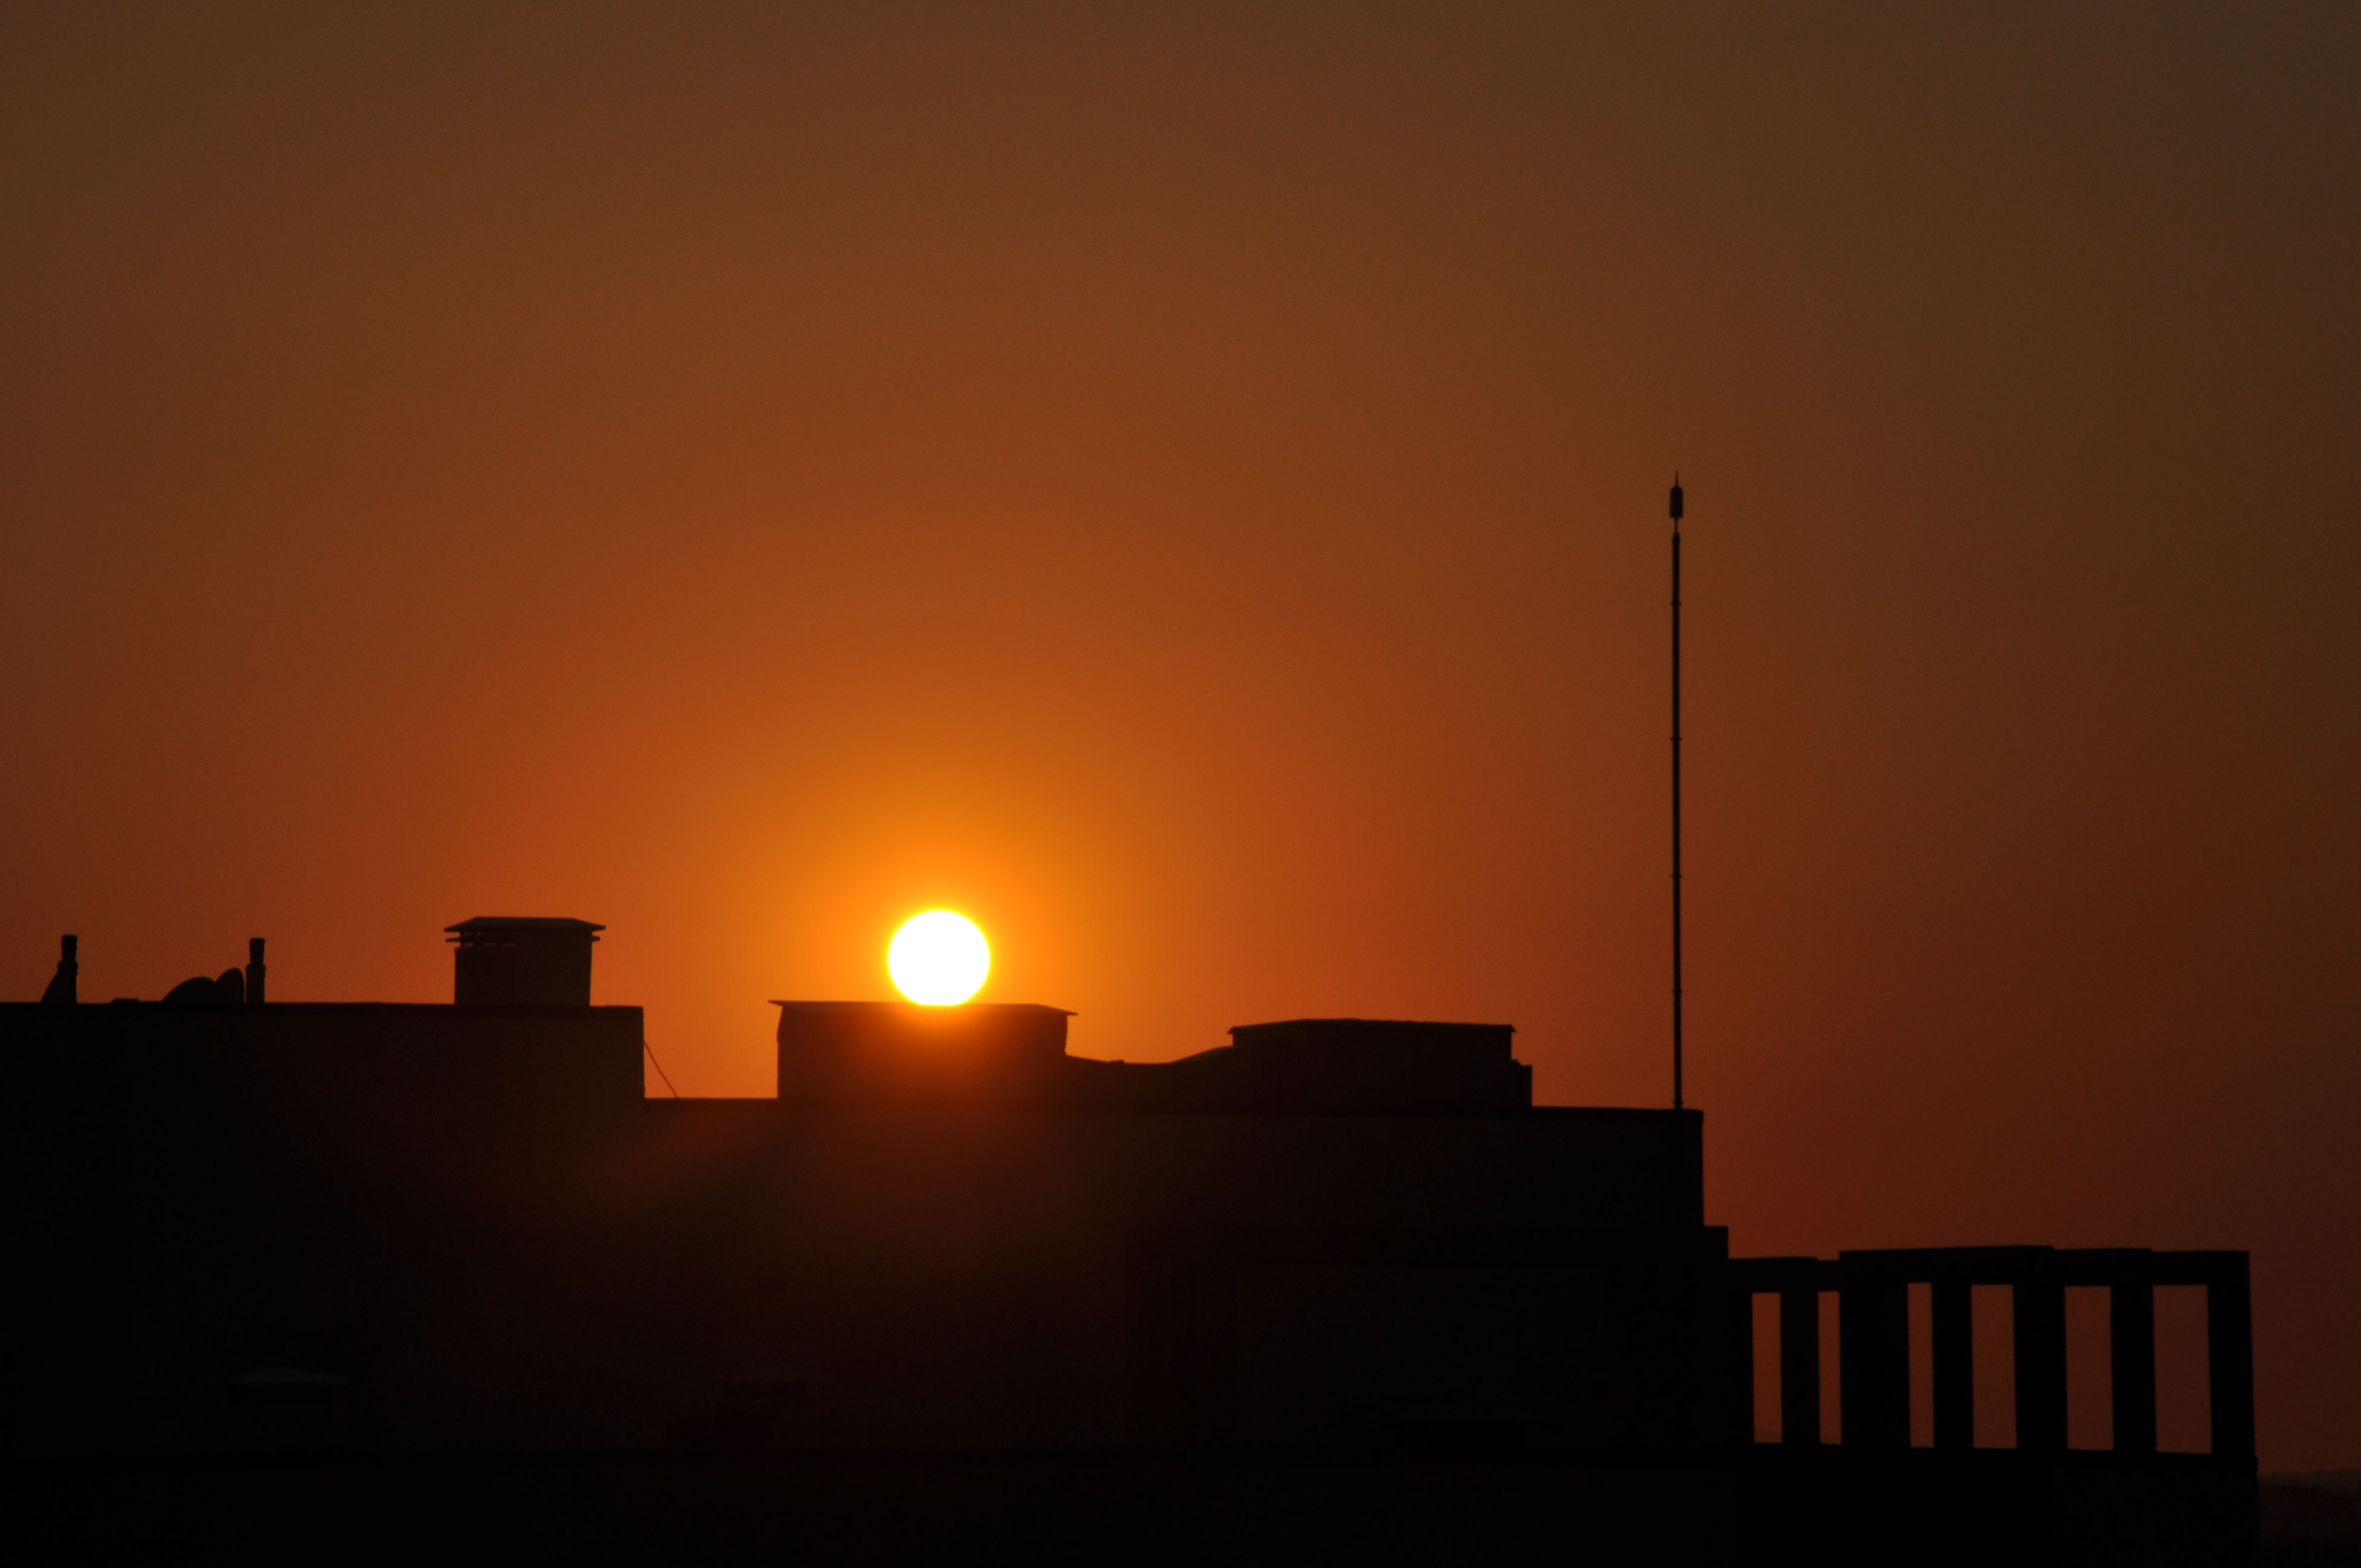 sunset, building exterior, architecture, built structure, sun, silhouette, orange color, copy space, low angle view, clear sky, building, sunlight, house, residential structure, sky, residential building, city, outdoors, no people, nature